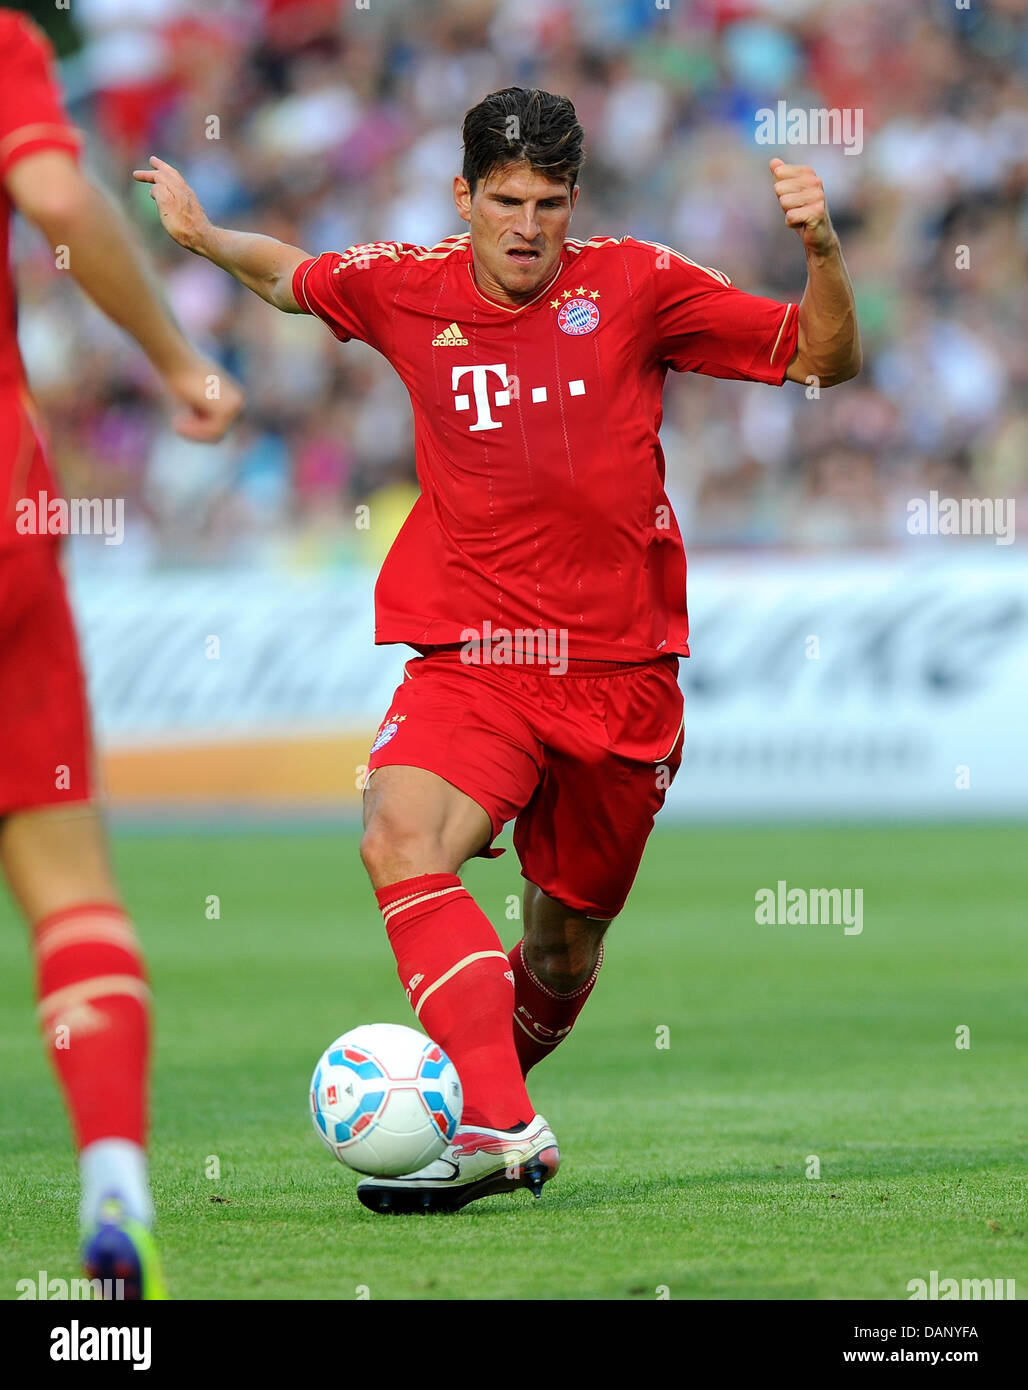 Mario Gomez of FC Bayern Munich controls the ball during the